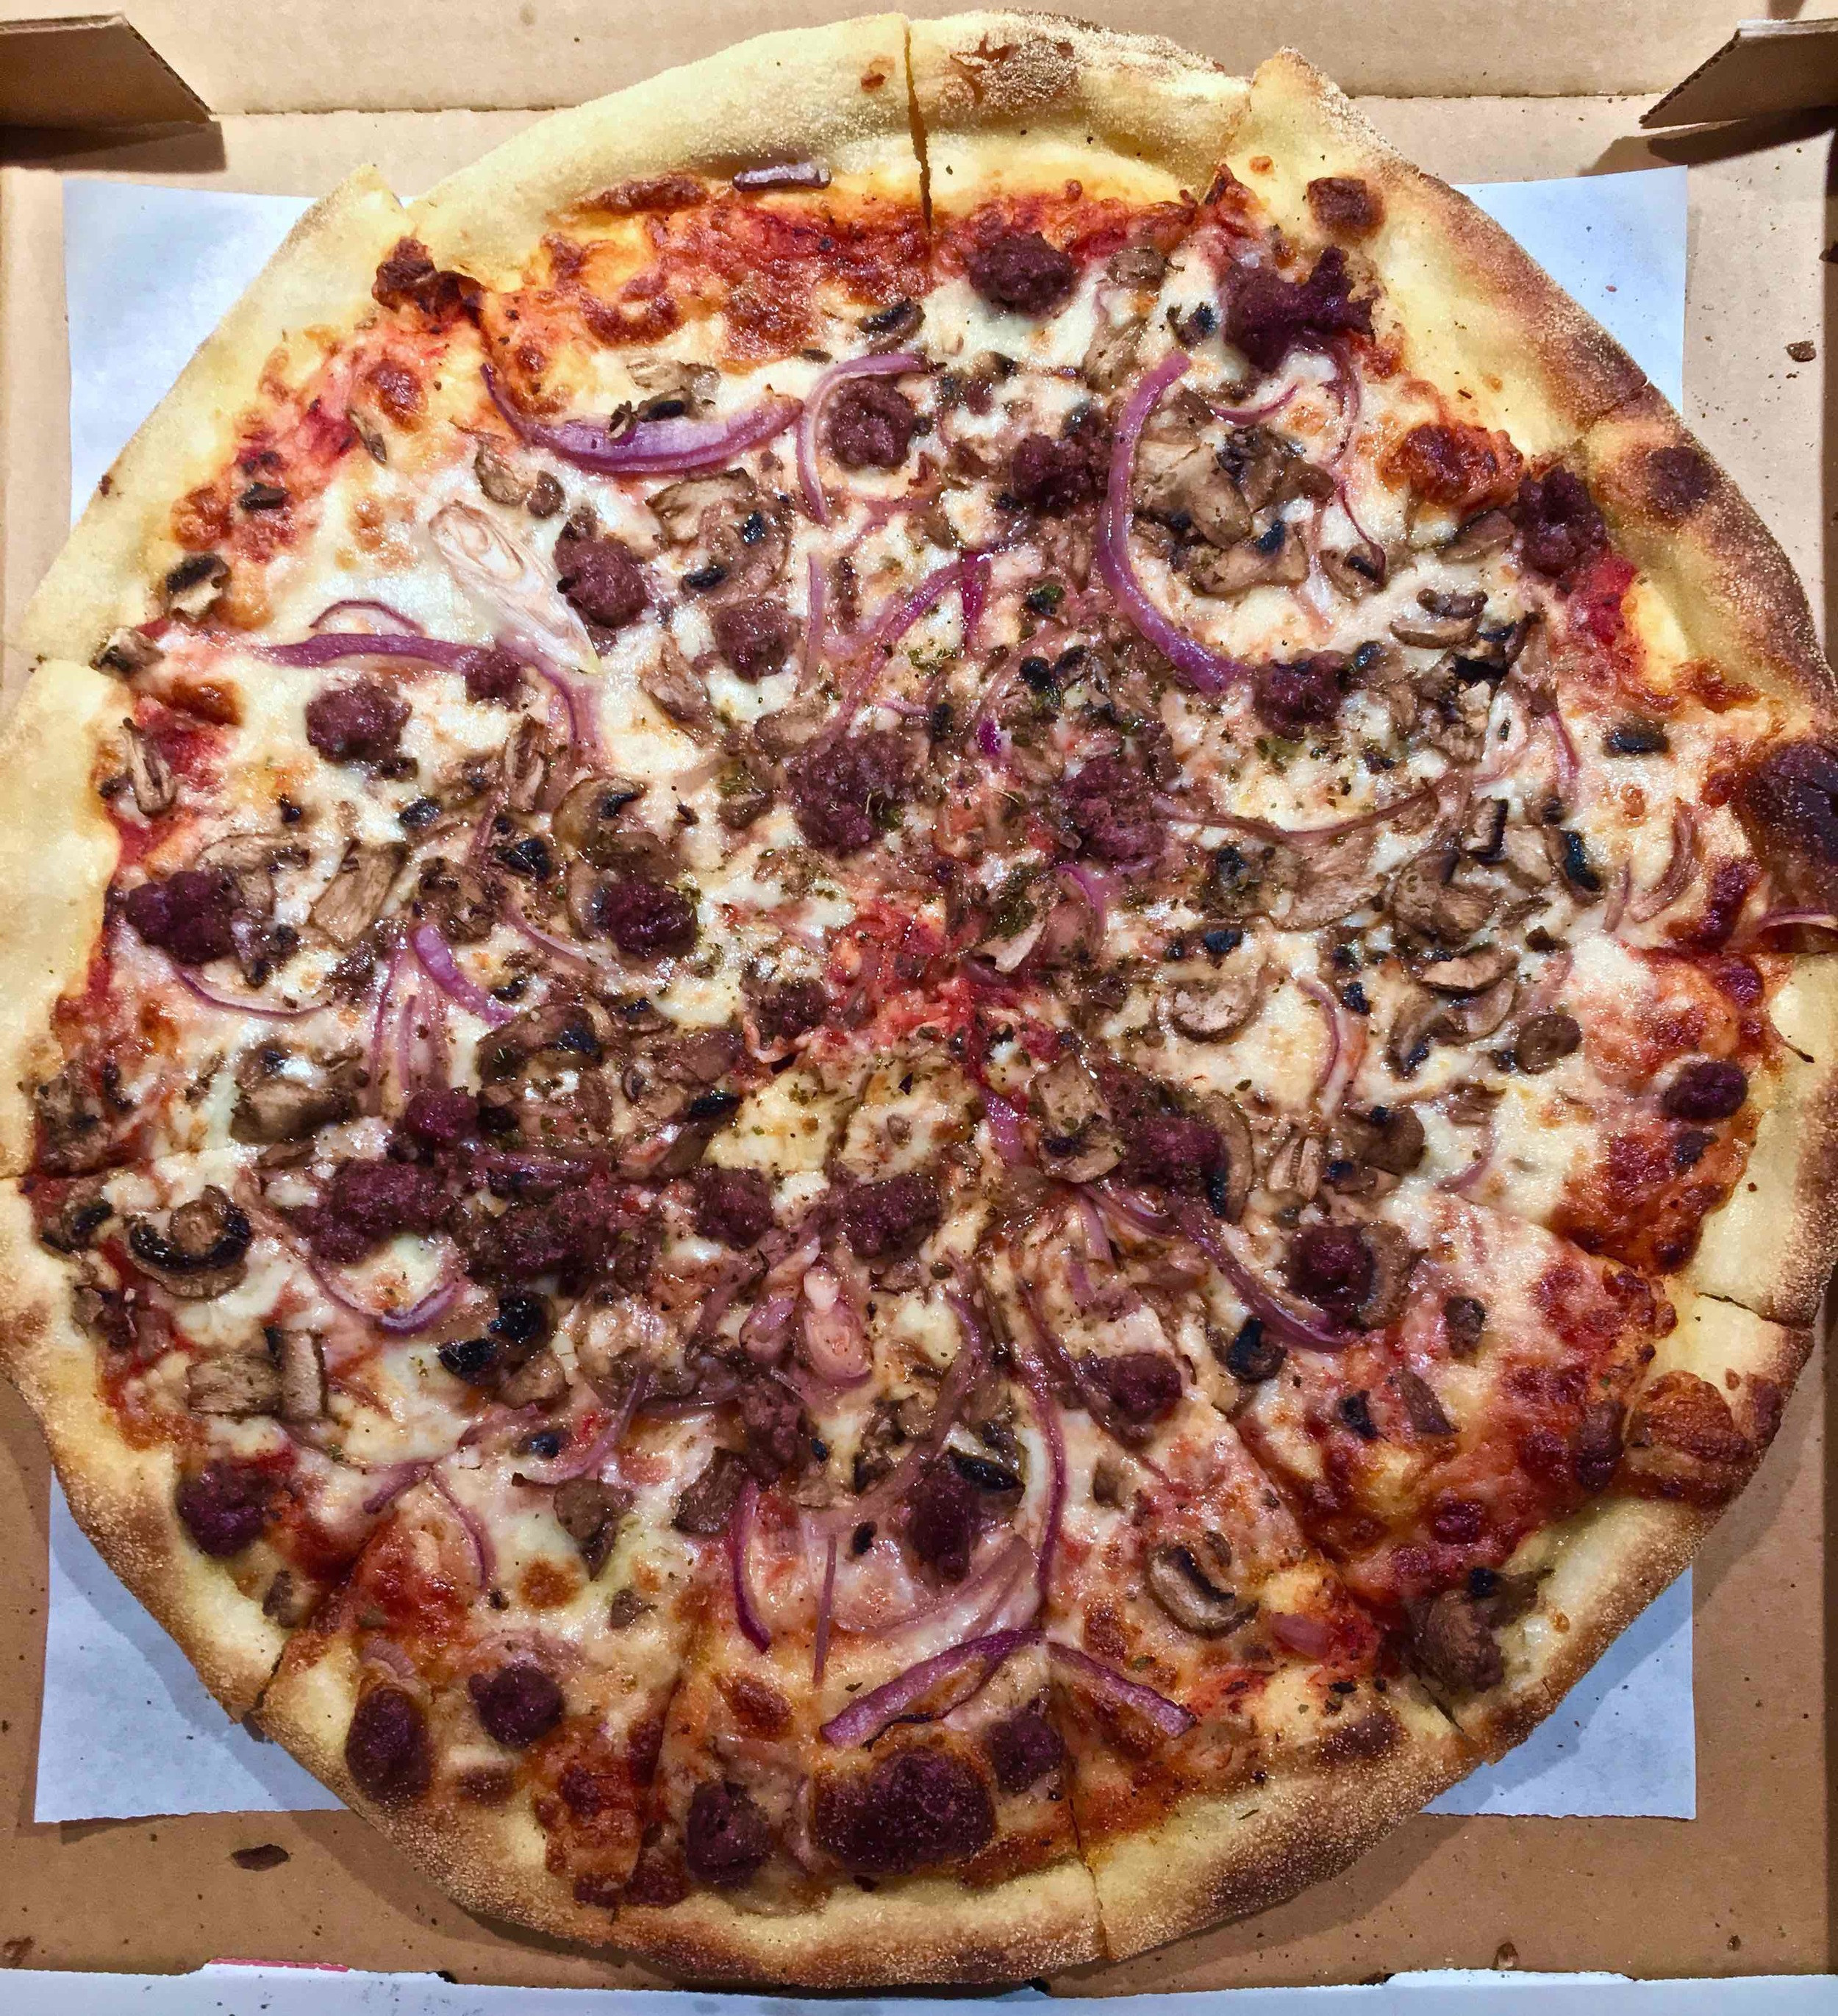 sourdough pizza with sausage, mushroom and red onion